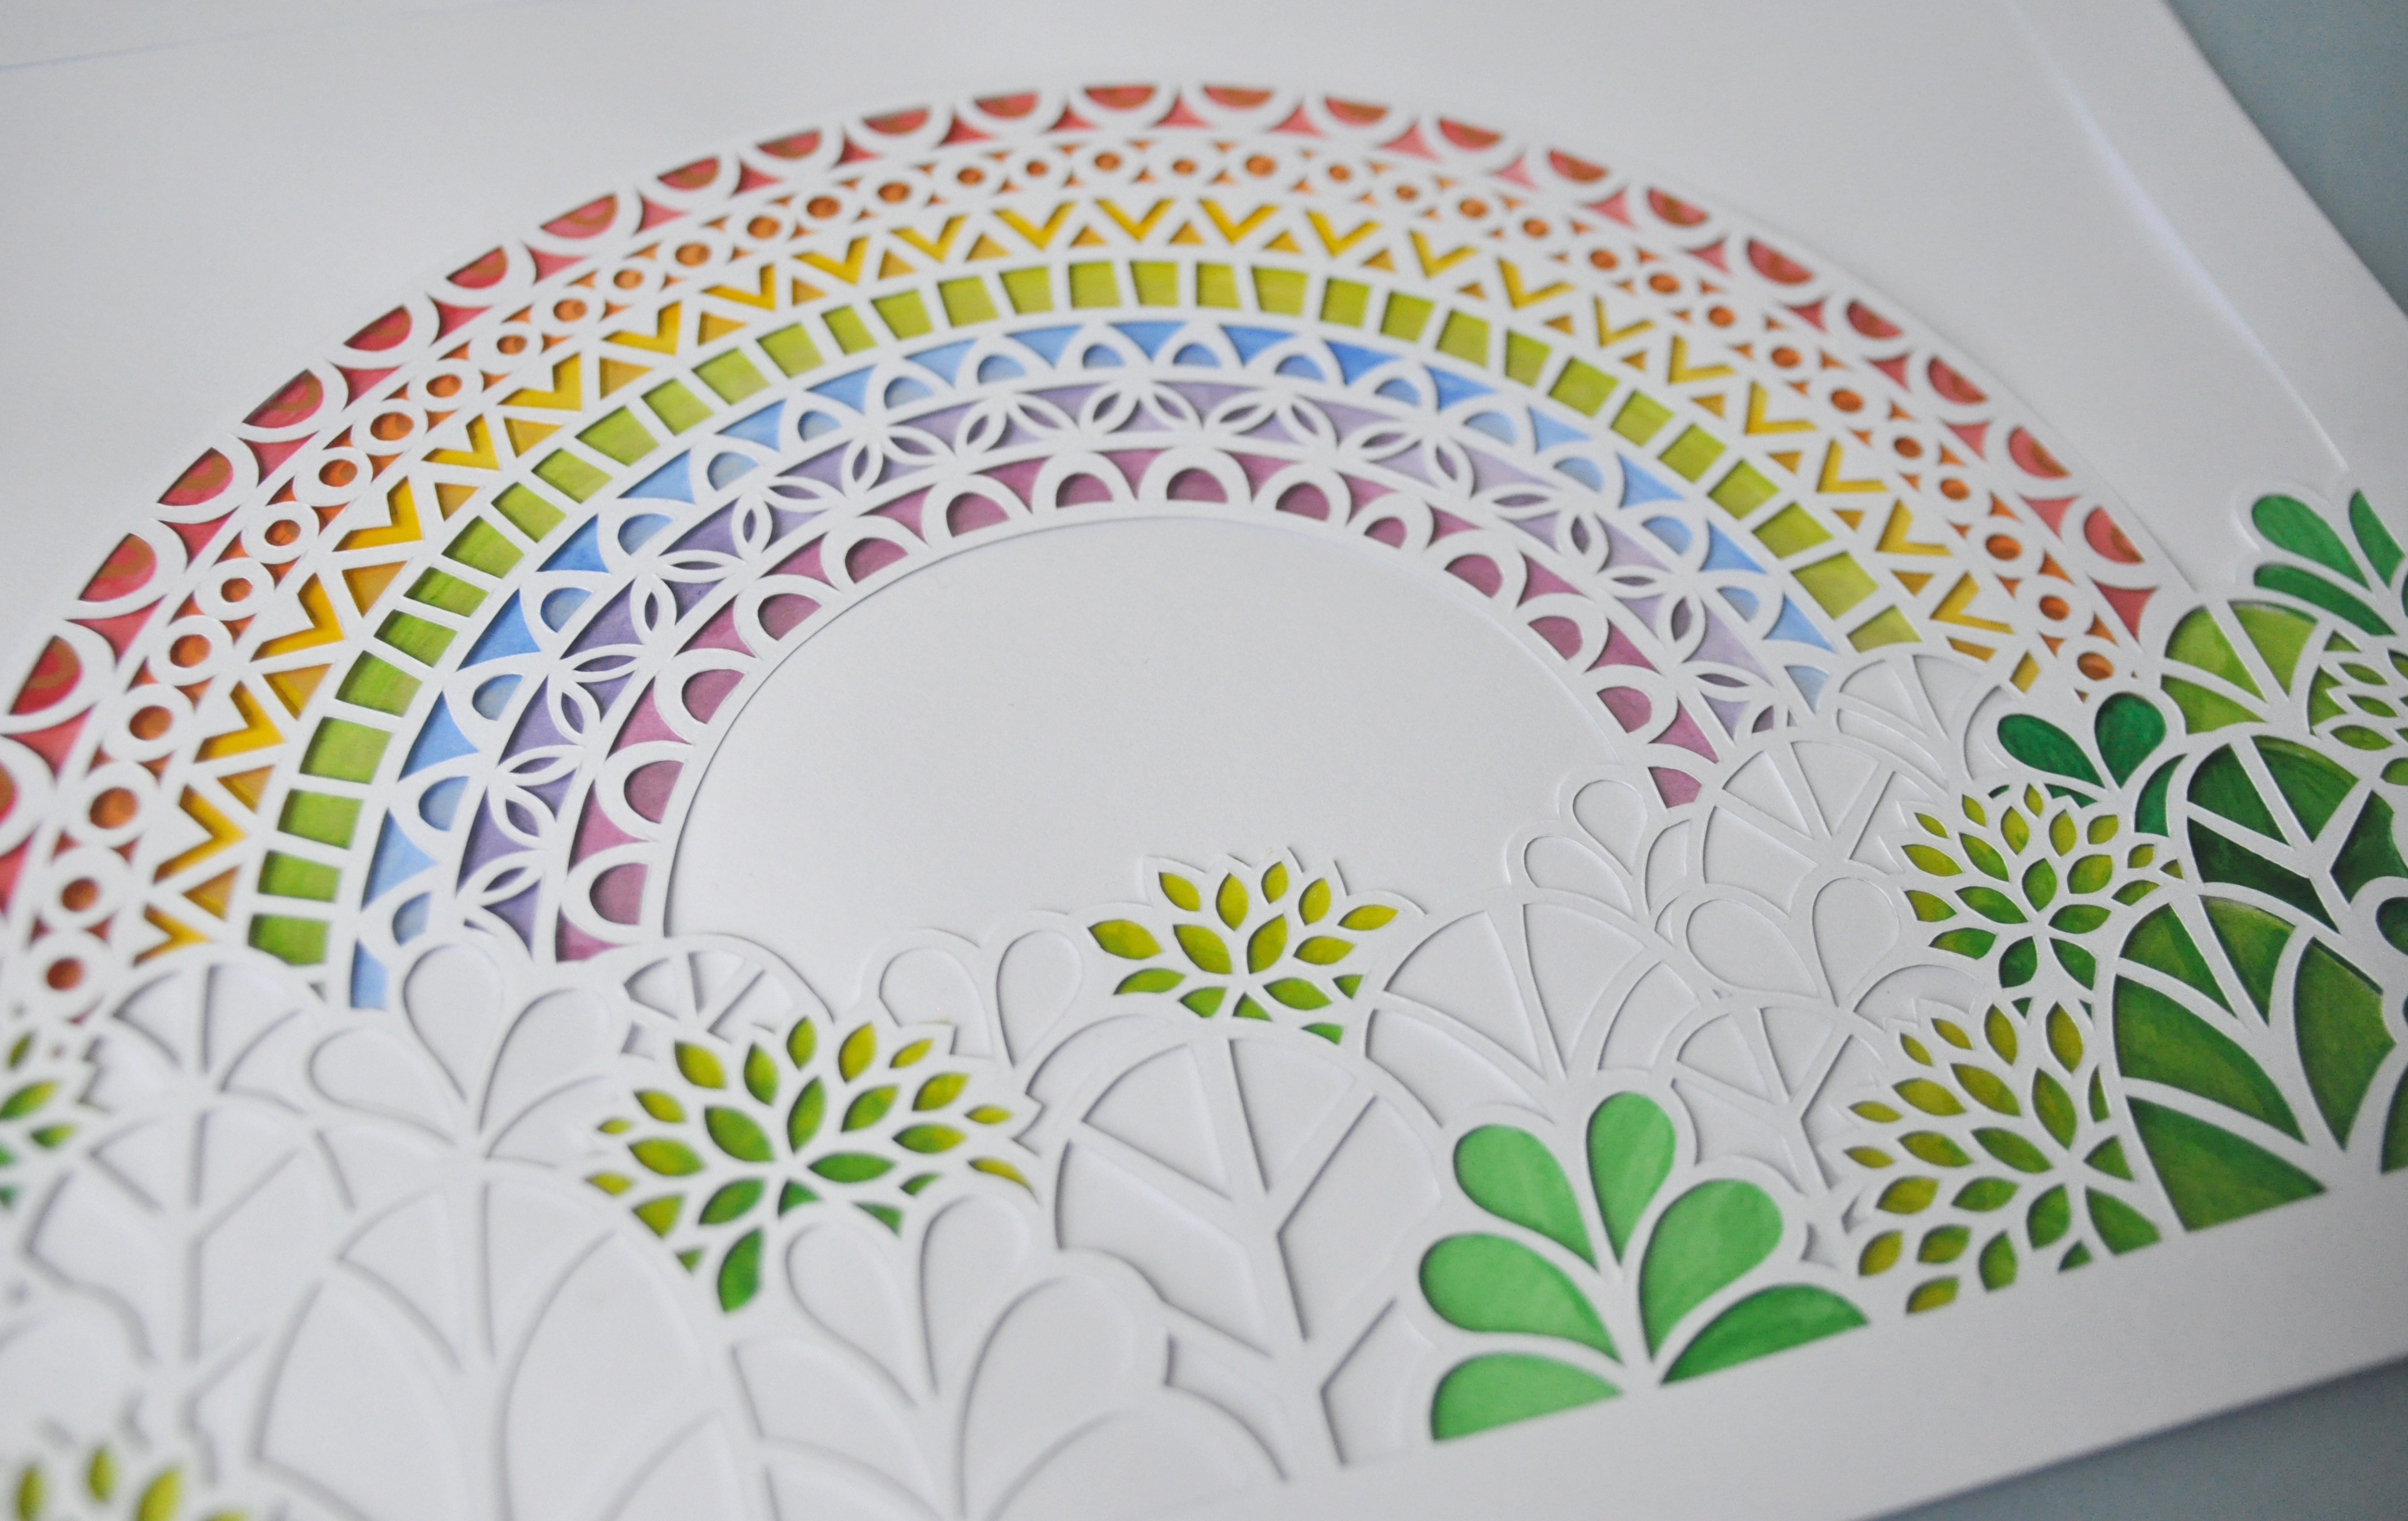 graphic about Free Printable Paper Cutting Templates identified as Rookies Papercutting Package - templates geared up towards color heritage sheets basically with absolutely free pp